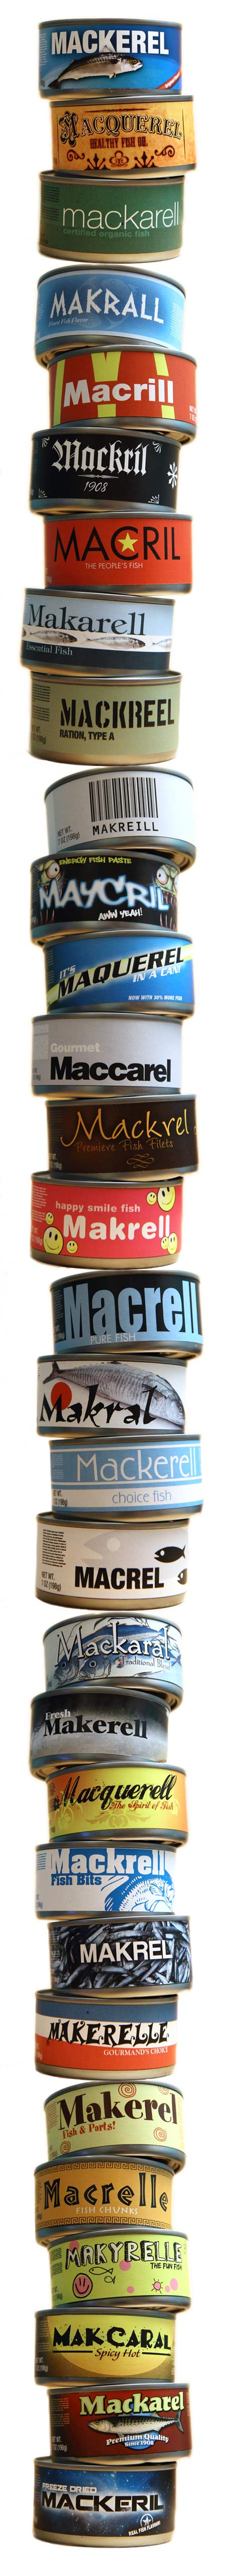 stack of mackerel cans